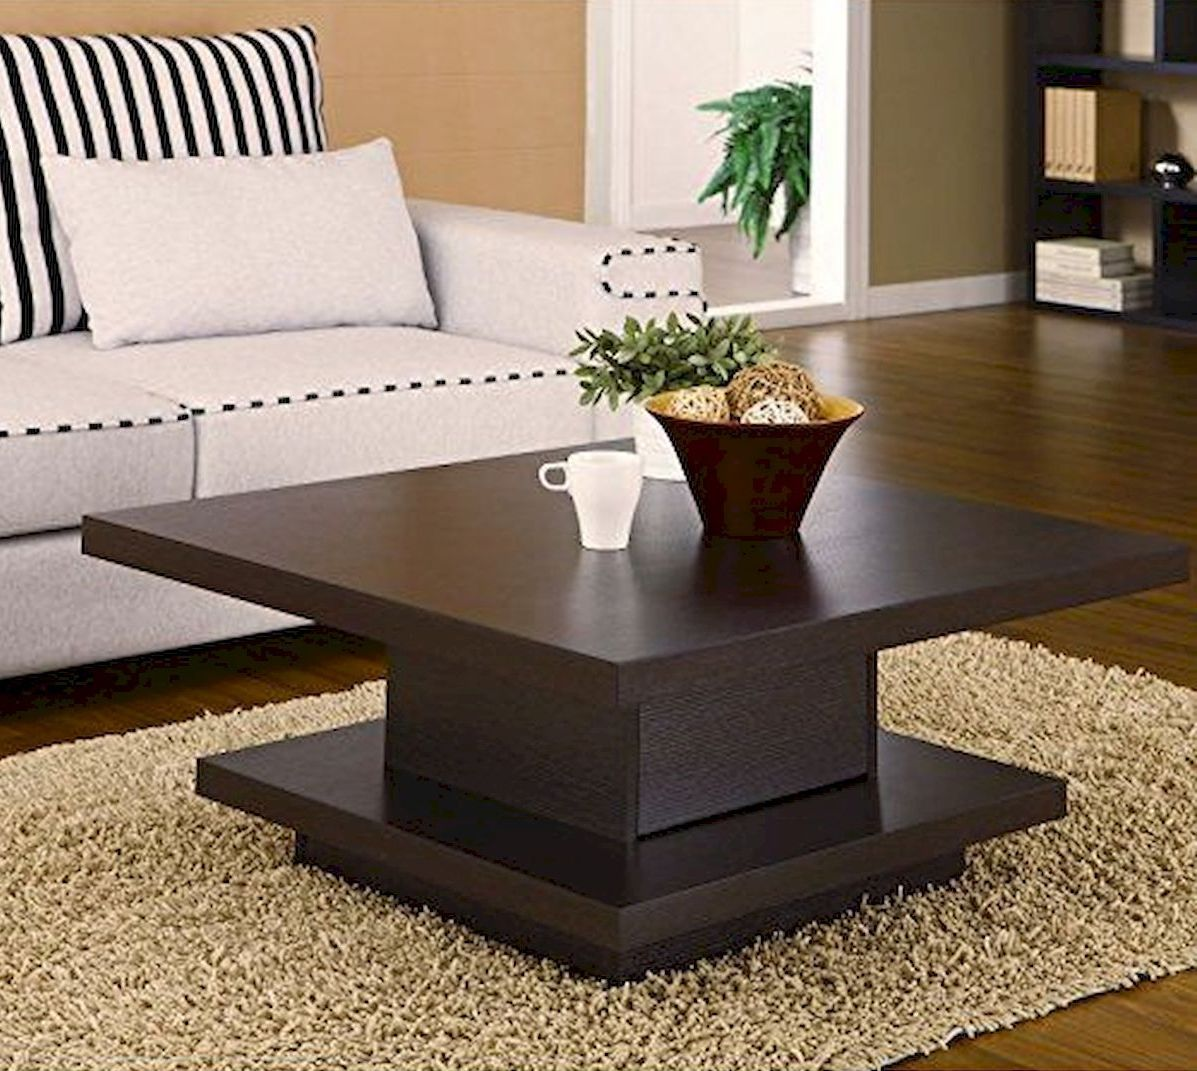 Coffee Table Ideas For Your Living Room Jihanshanum Table